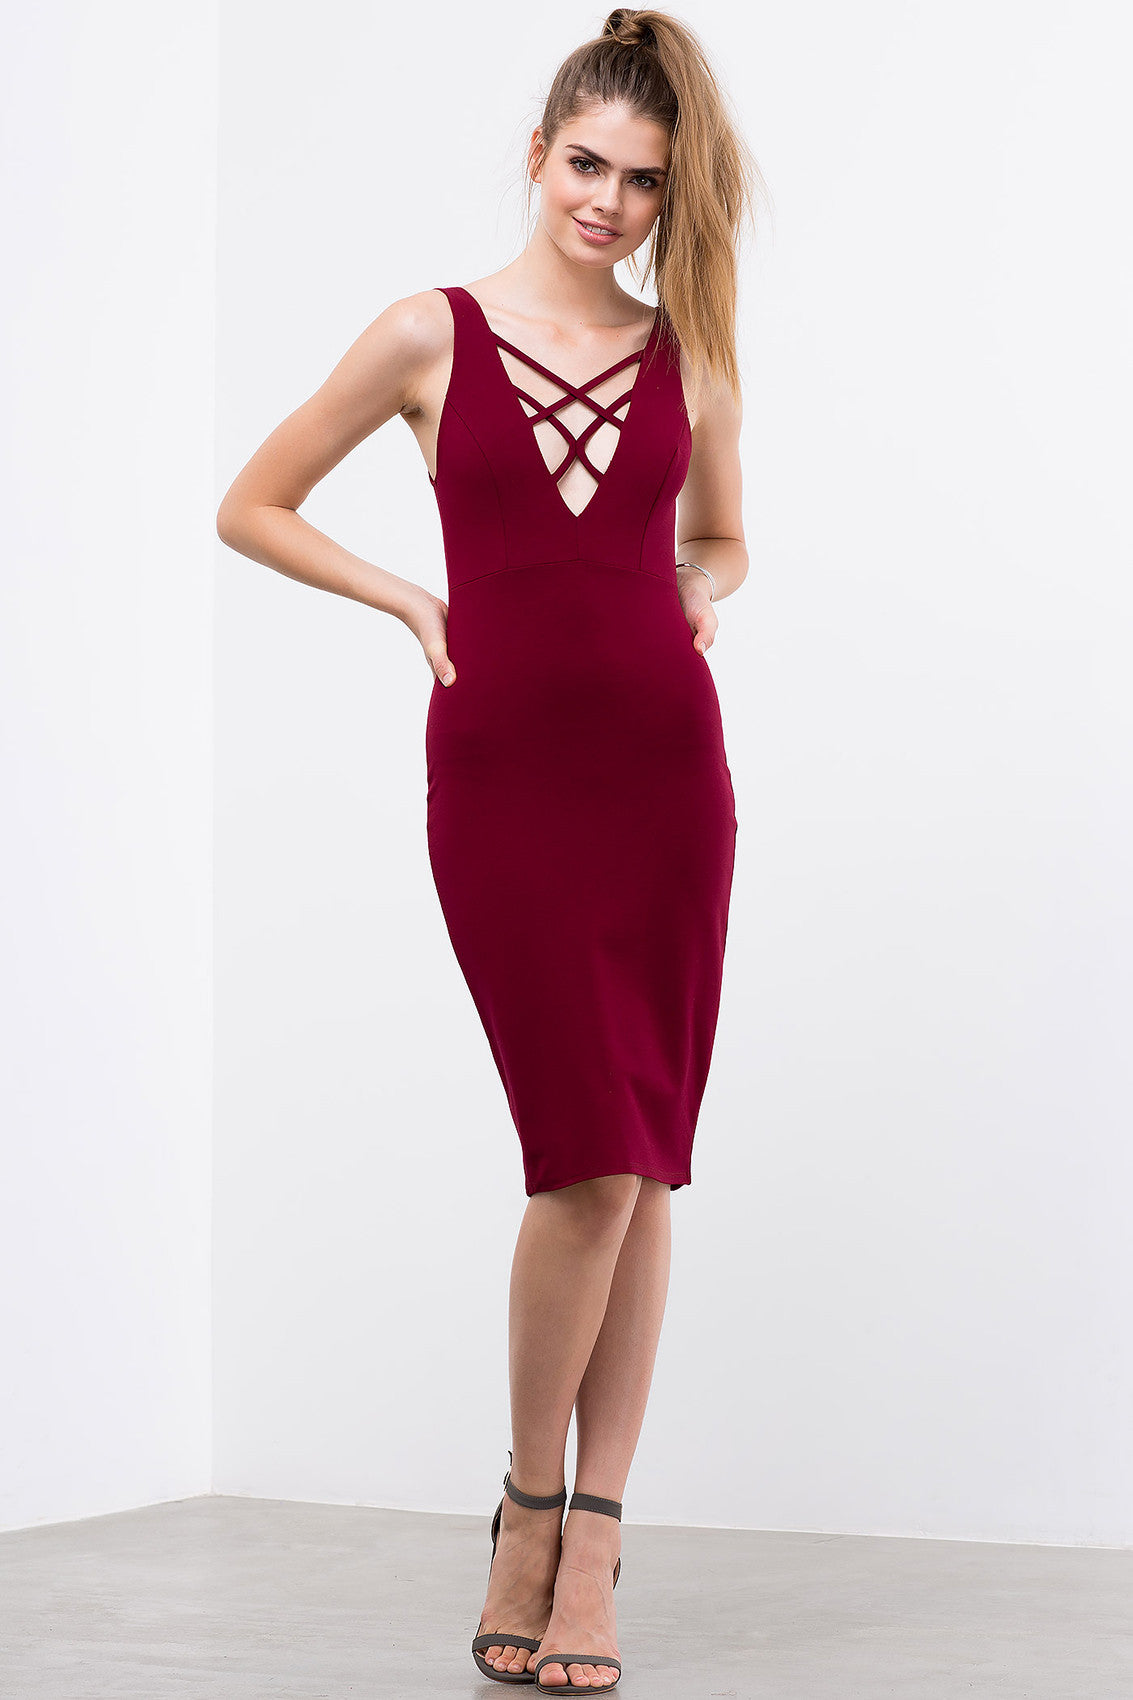 Sleeveless criss cross lace up bodycon midi party dress in burgundy. Front view